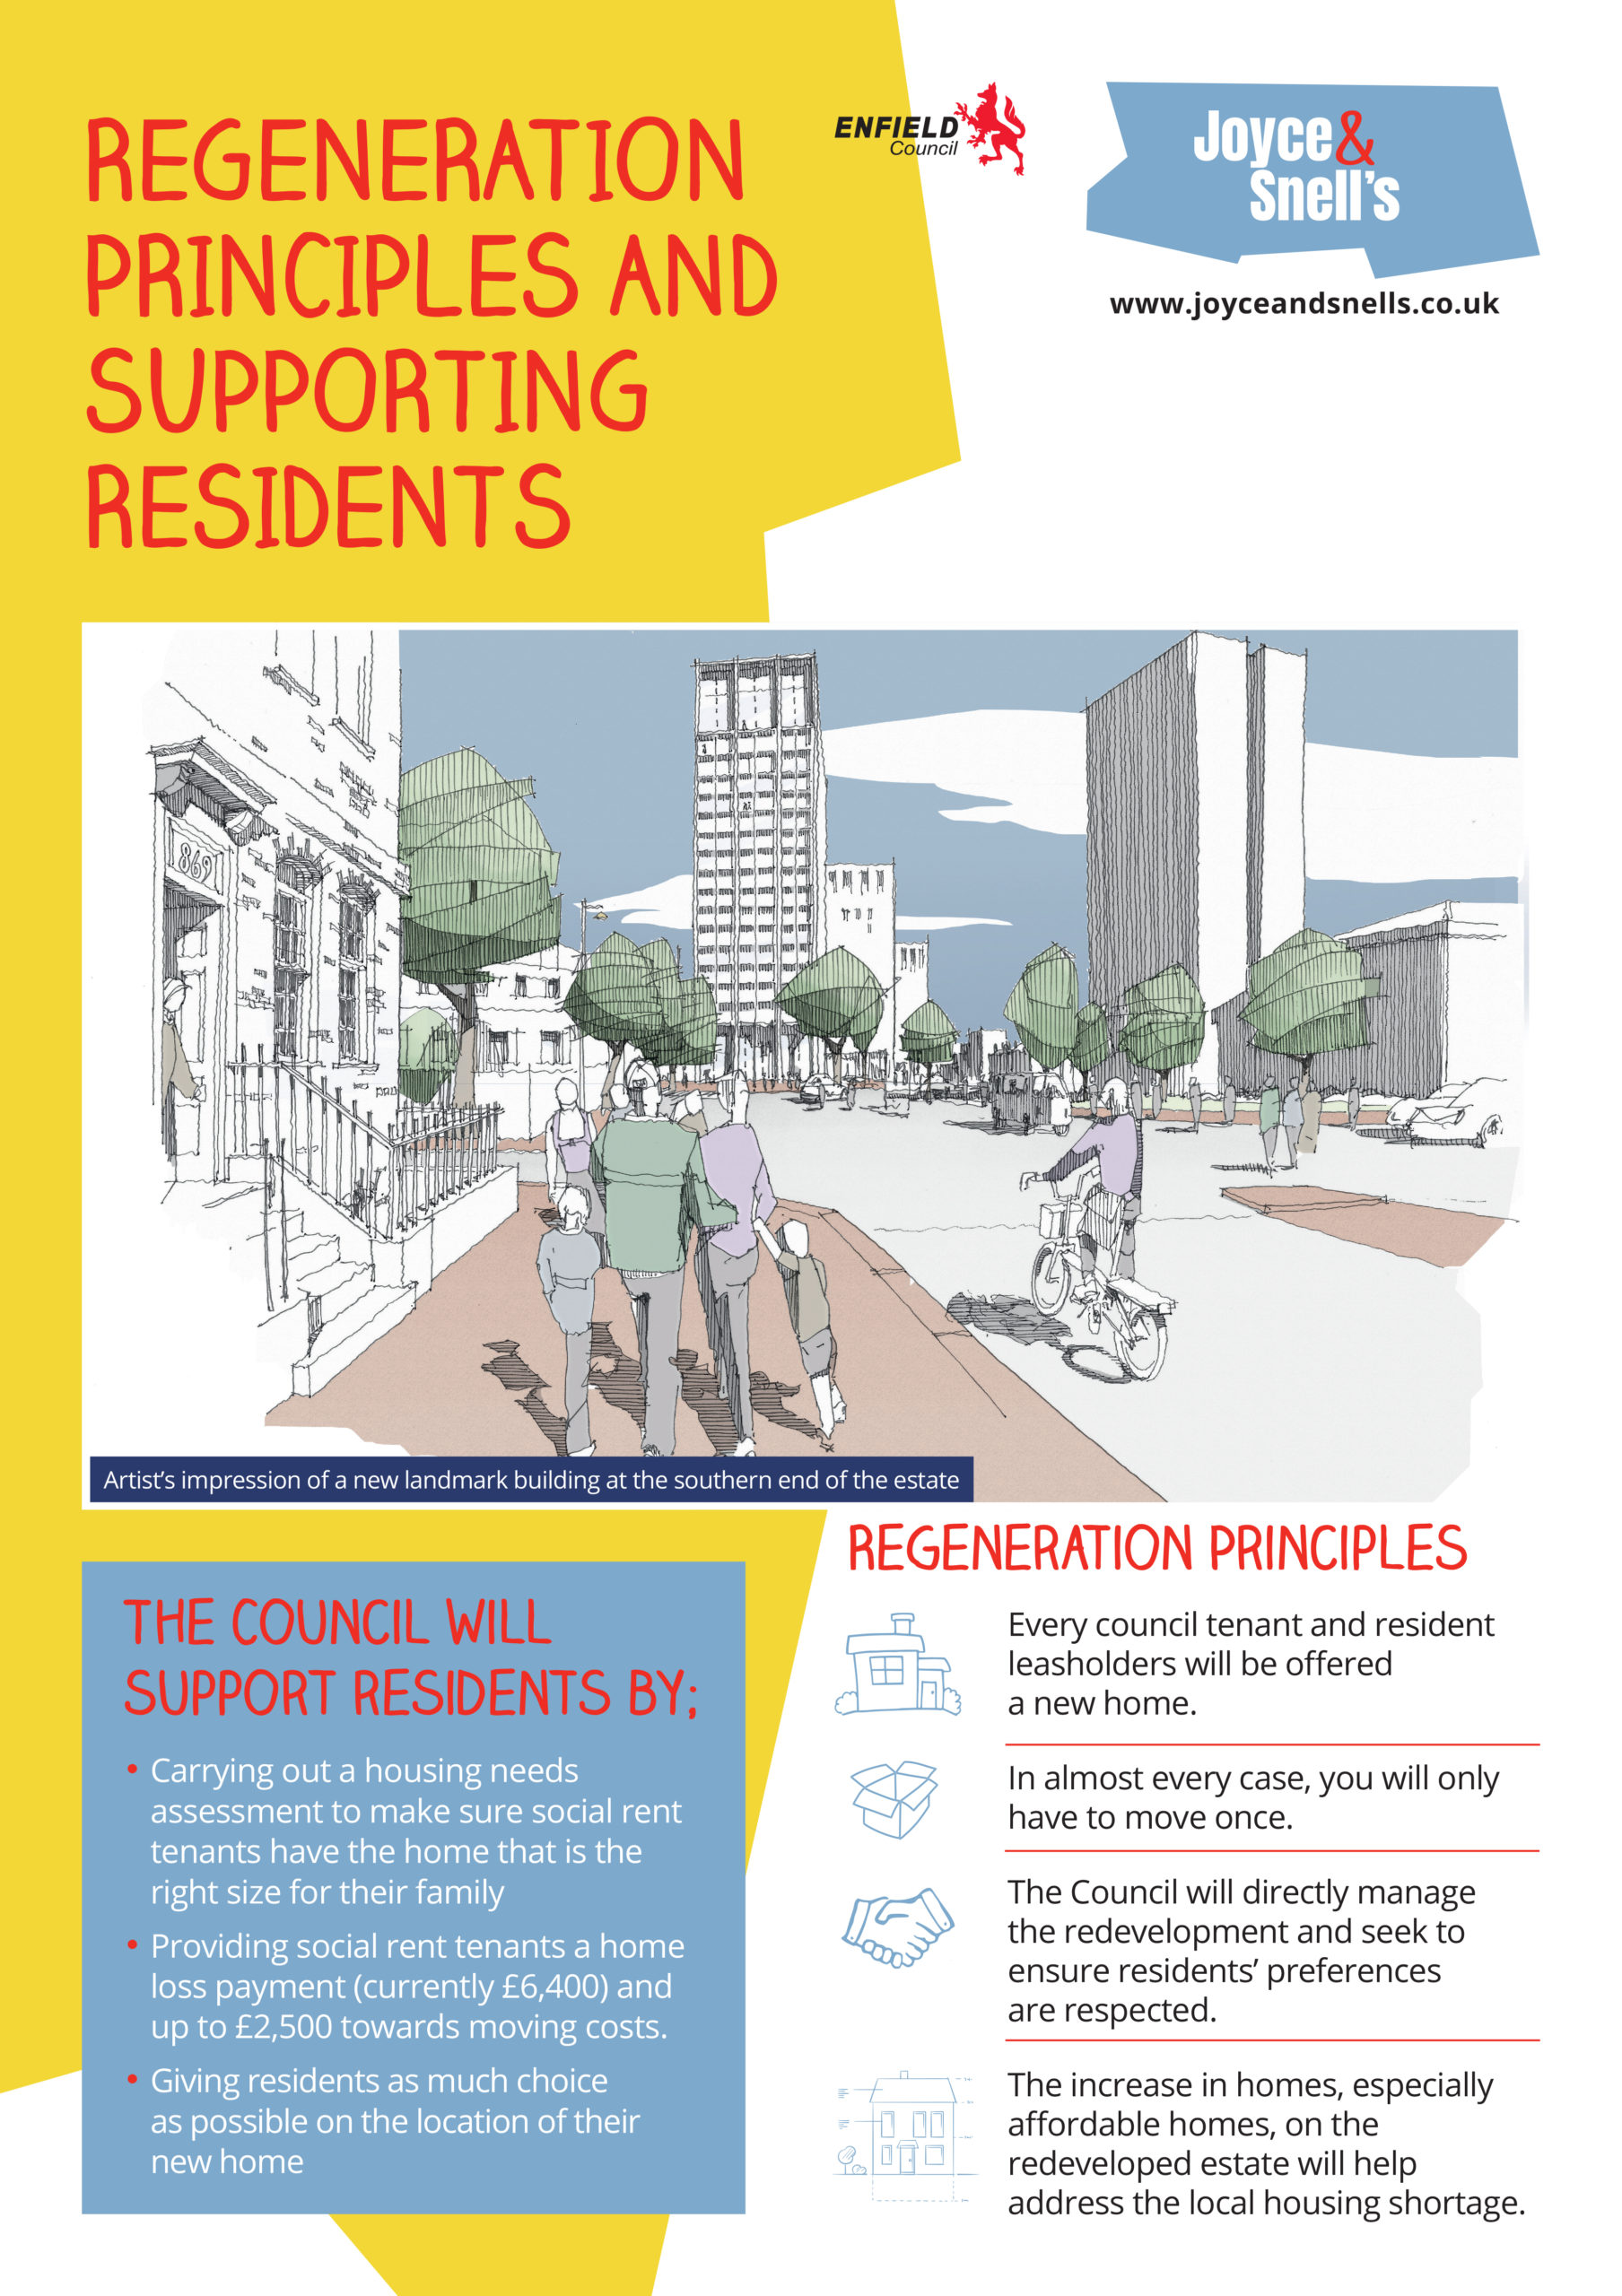 Joyce & Snells Exhibition Board 3 - Regeneration principles and supporting residents